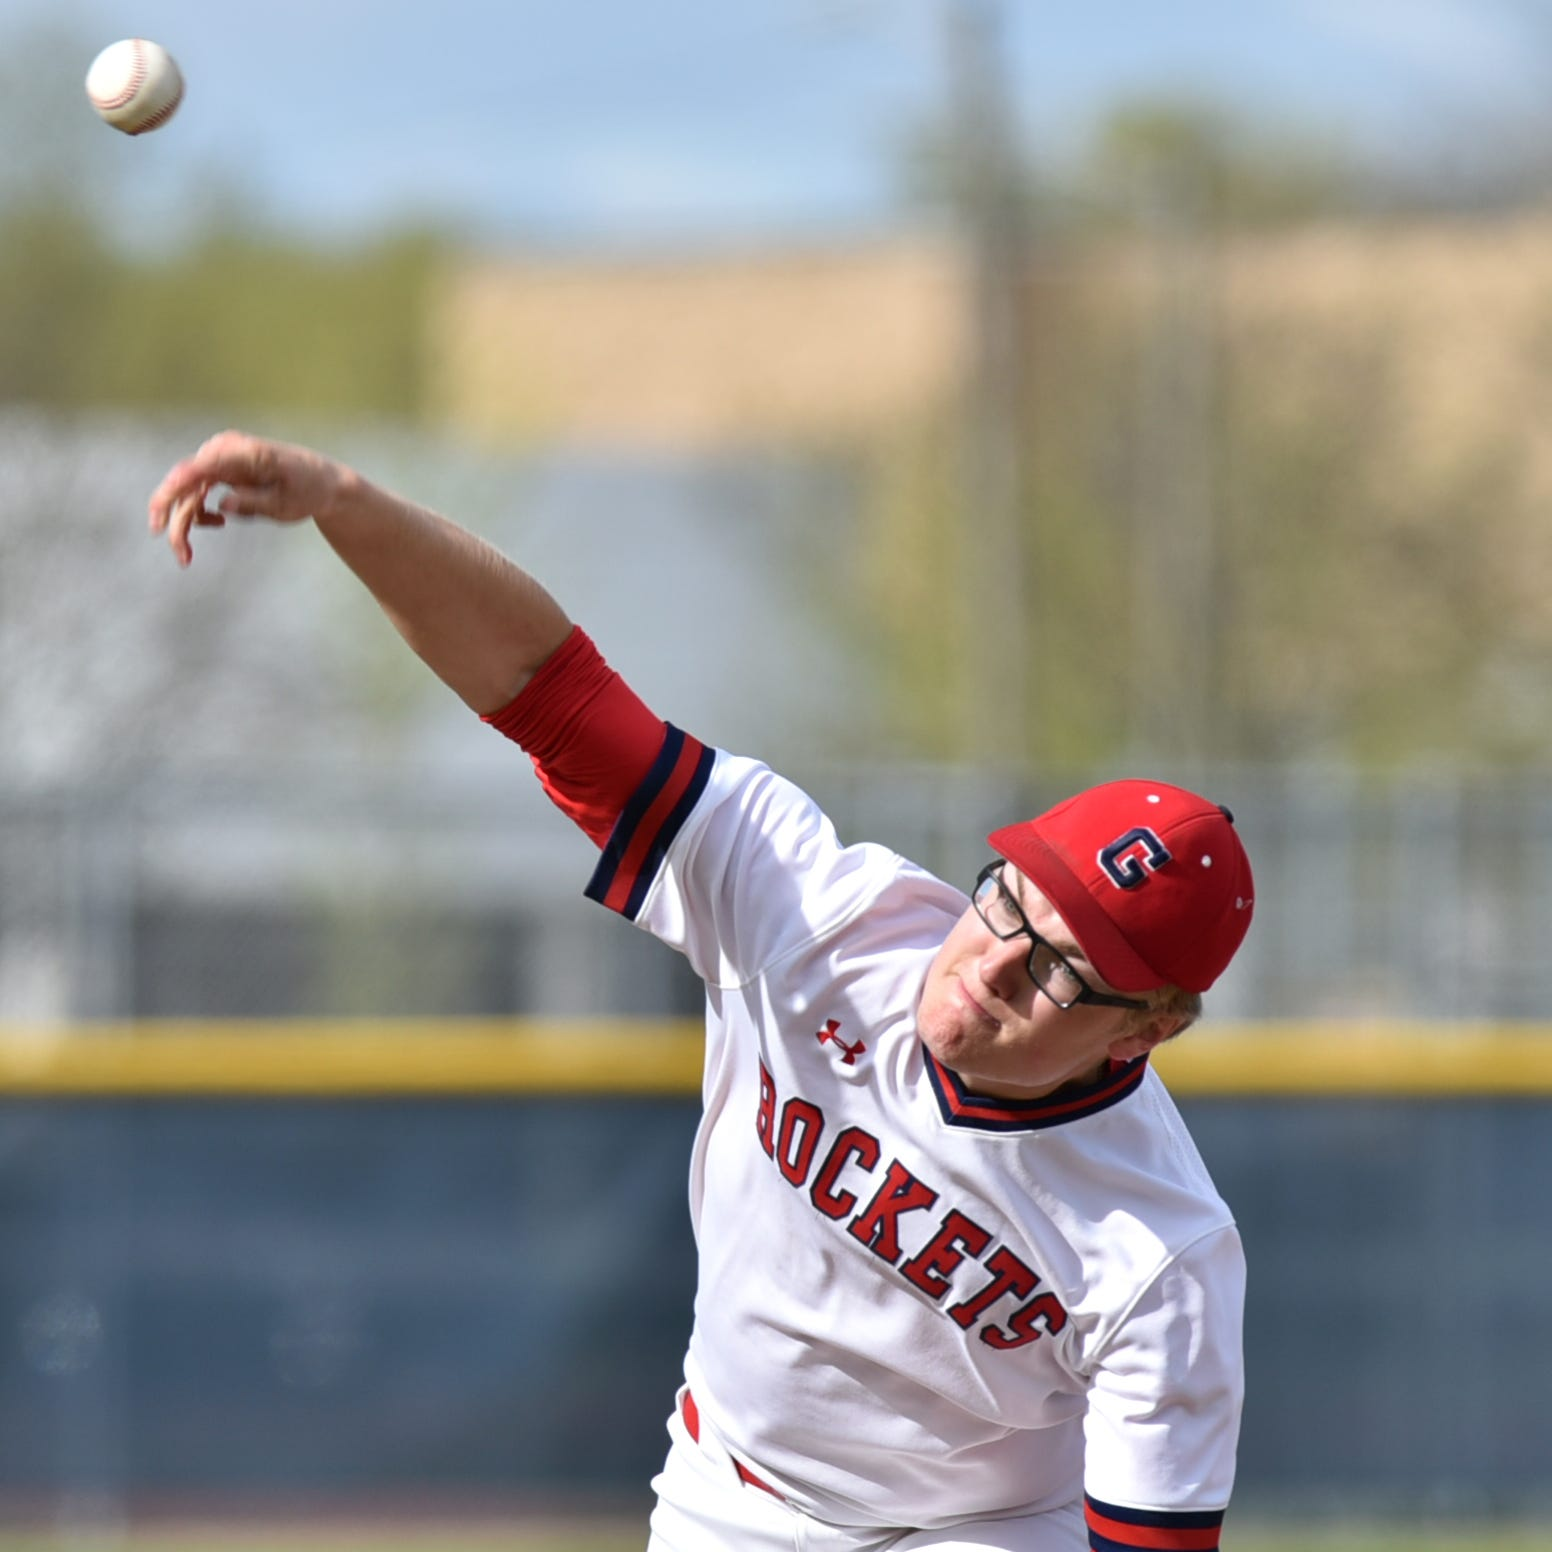 Chad Stevens powers John Glenn baseball past Northville in extra innings